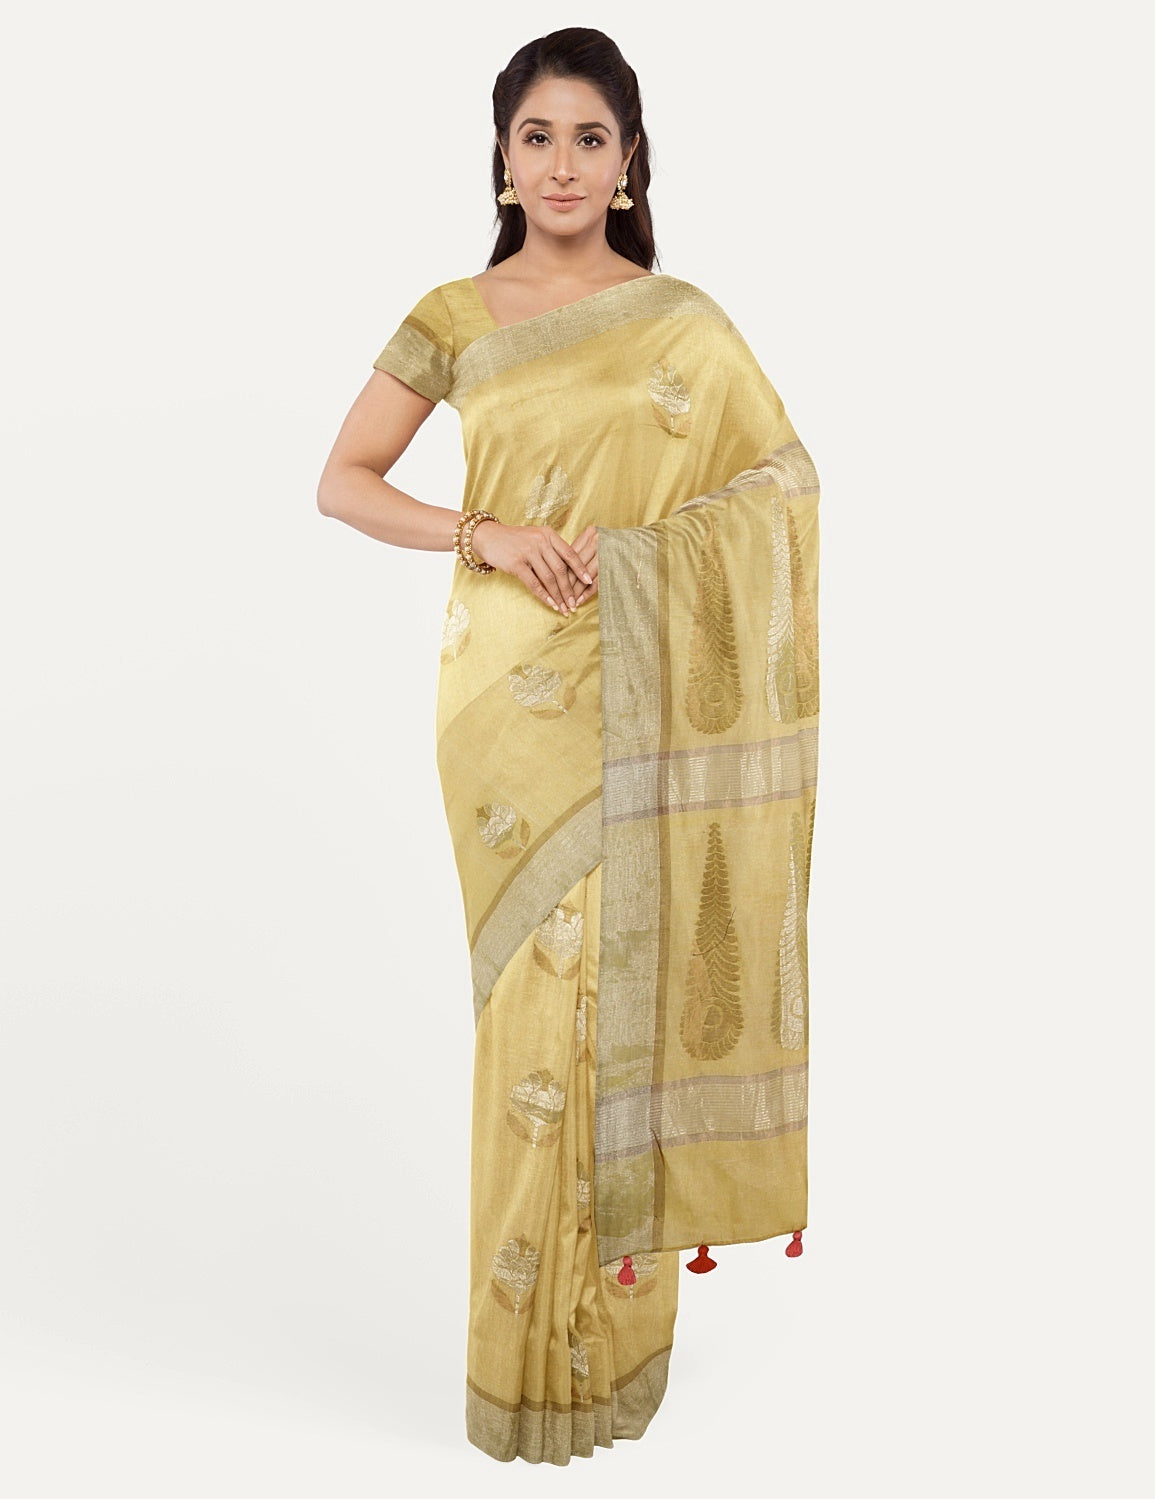 Sandalwood Yellow Tissue Saree